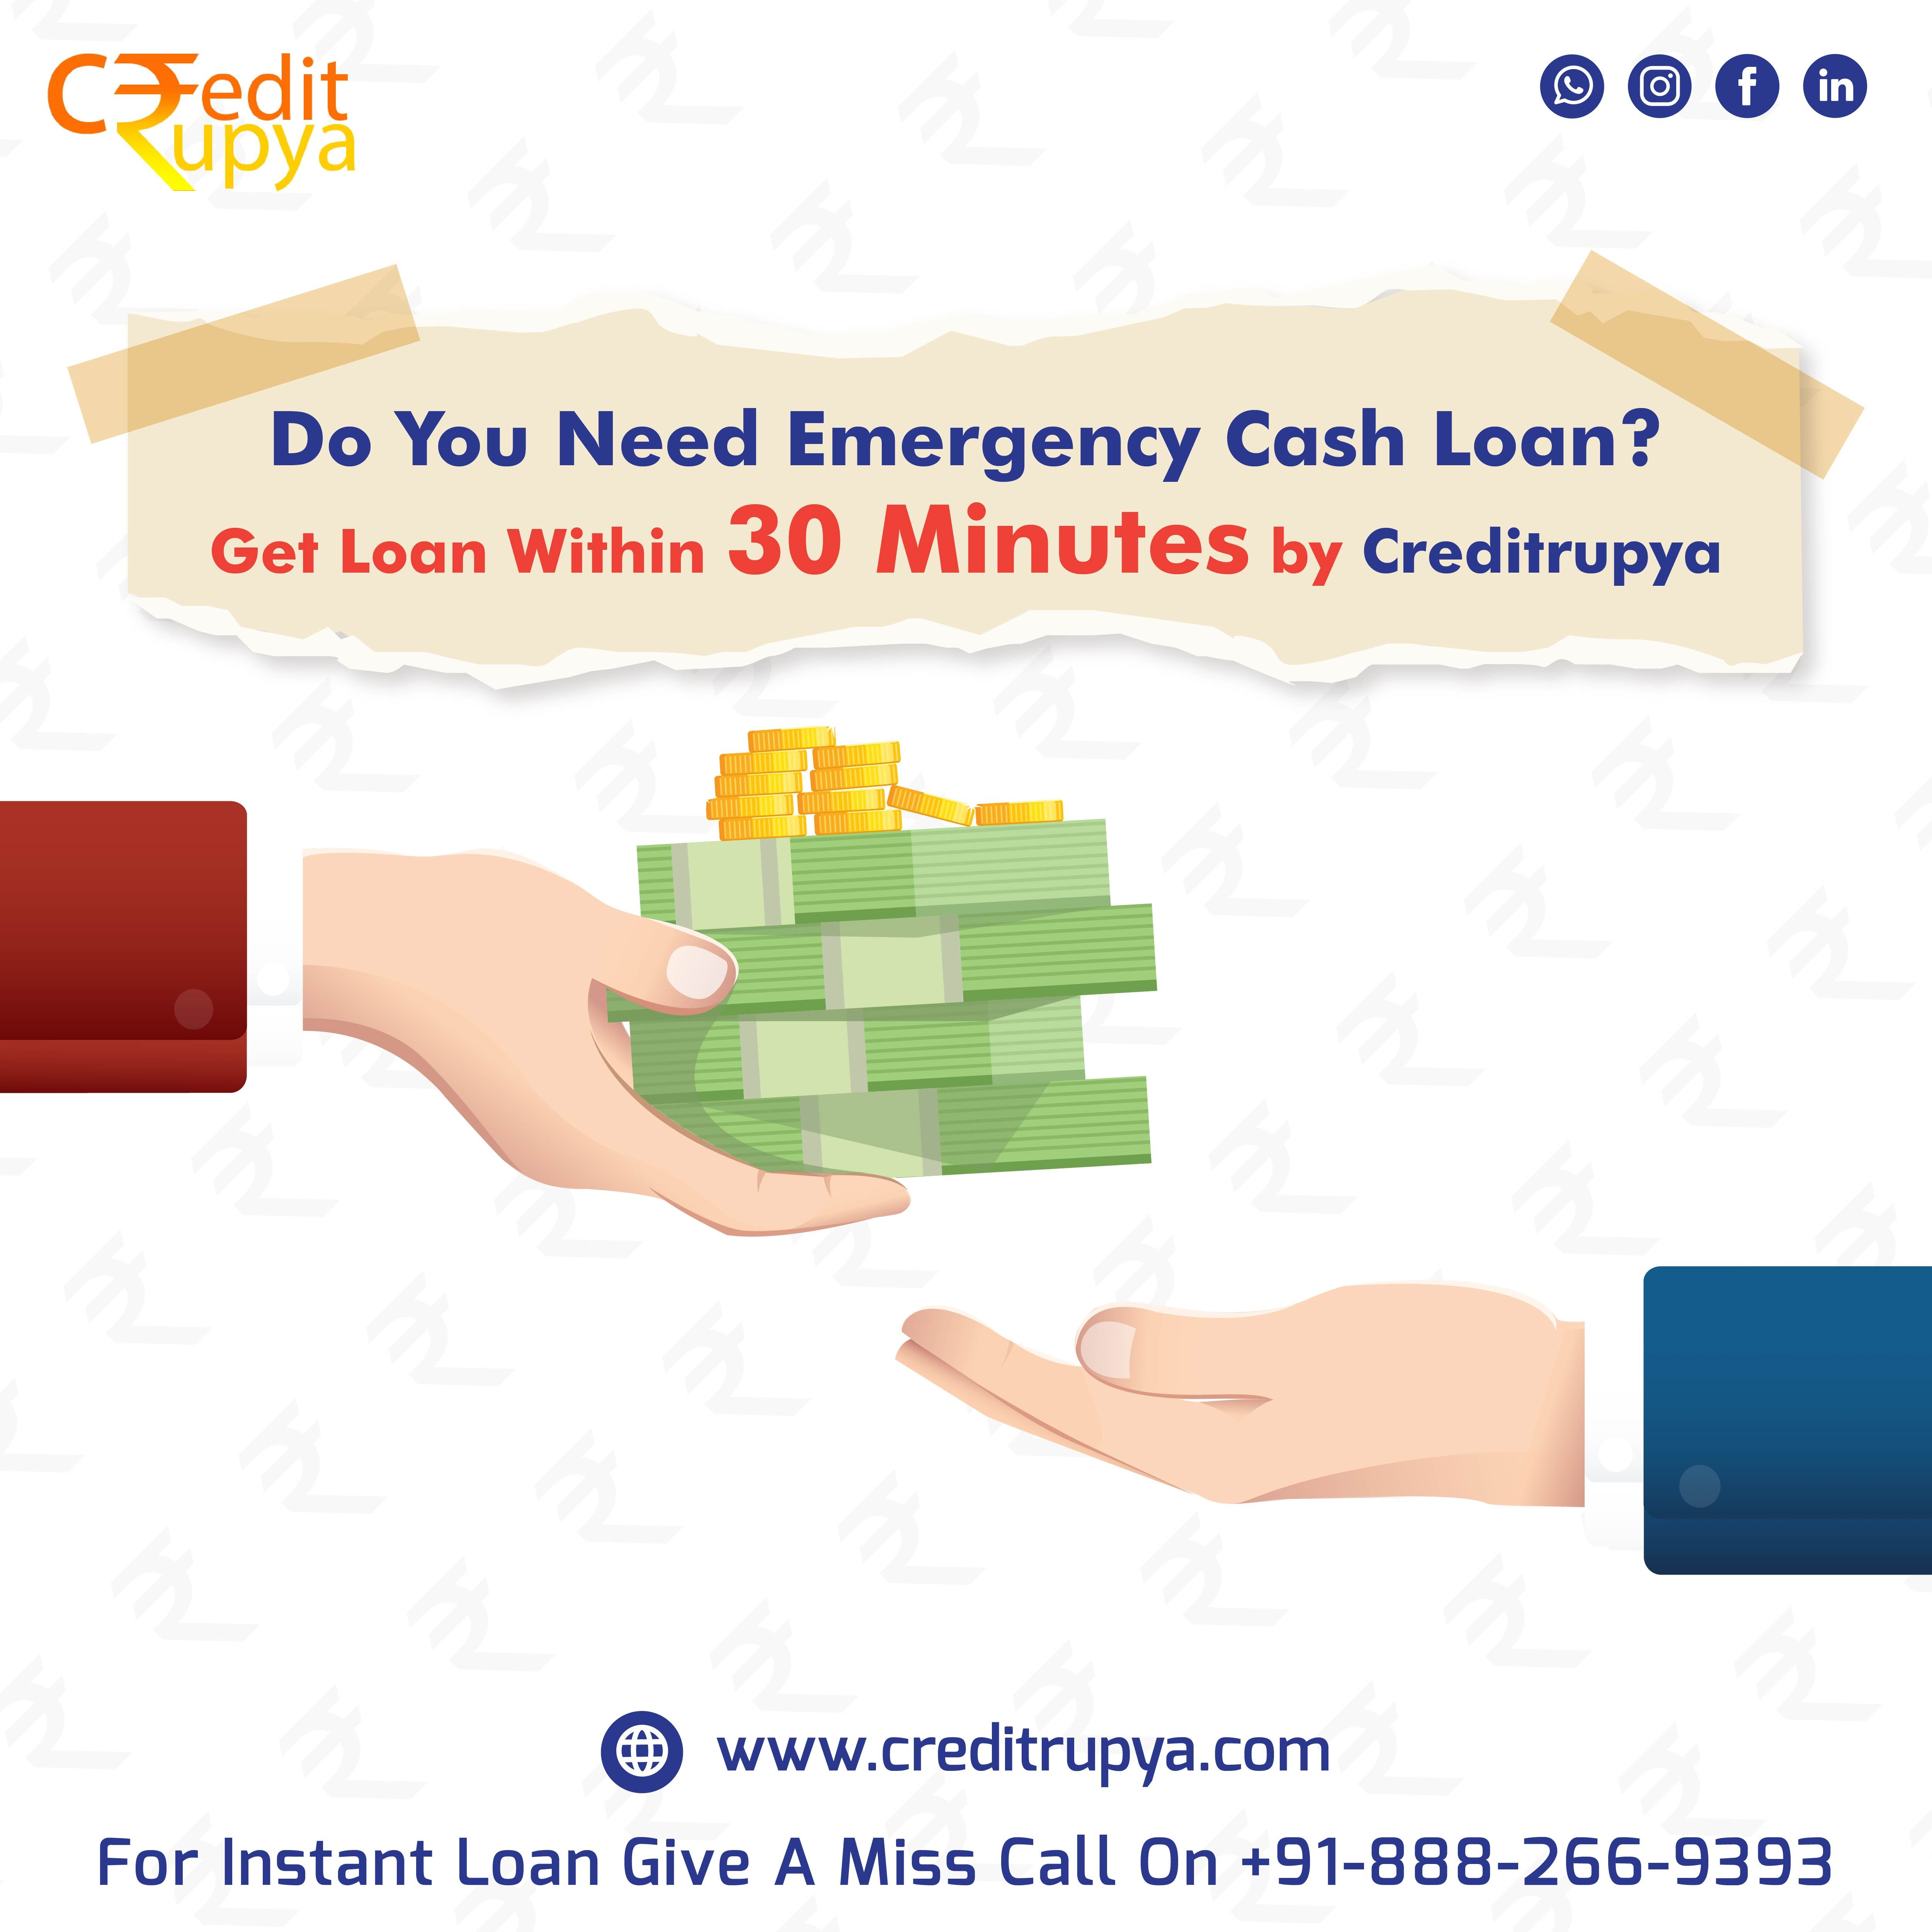 Personal Loan Within 30 Minutes By Creditrupya In 2020 Online Loans Instant Loans Personal Loans